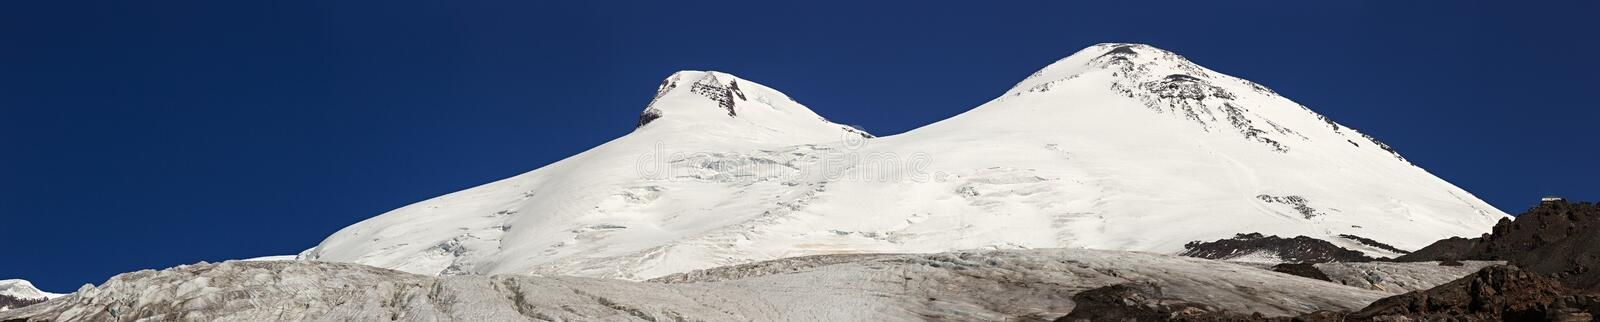 Panoramic view of the southern slope of Mount Elbrus. Of the Caucasus Mountains in Russia. Snow-covered mountain peaks with two peaks royalty free stock image